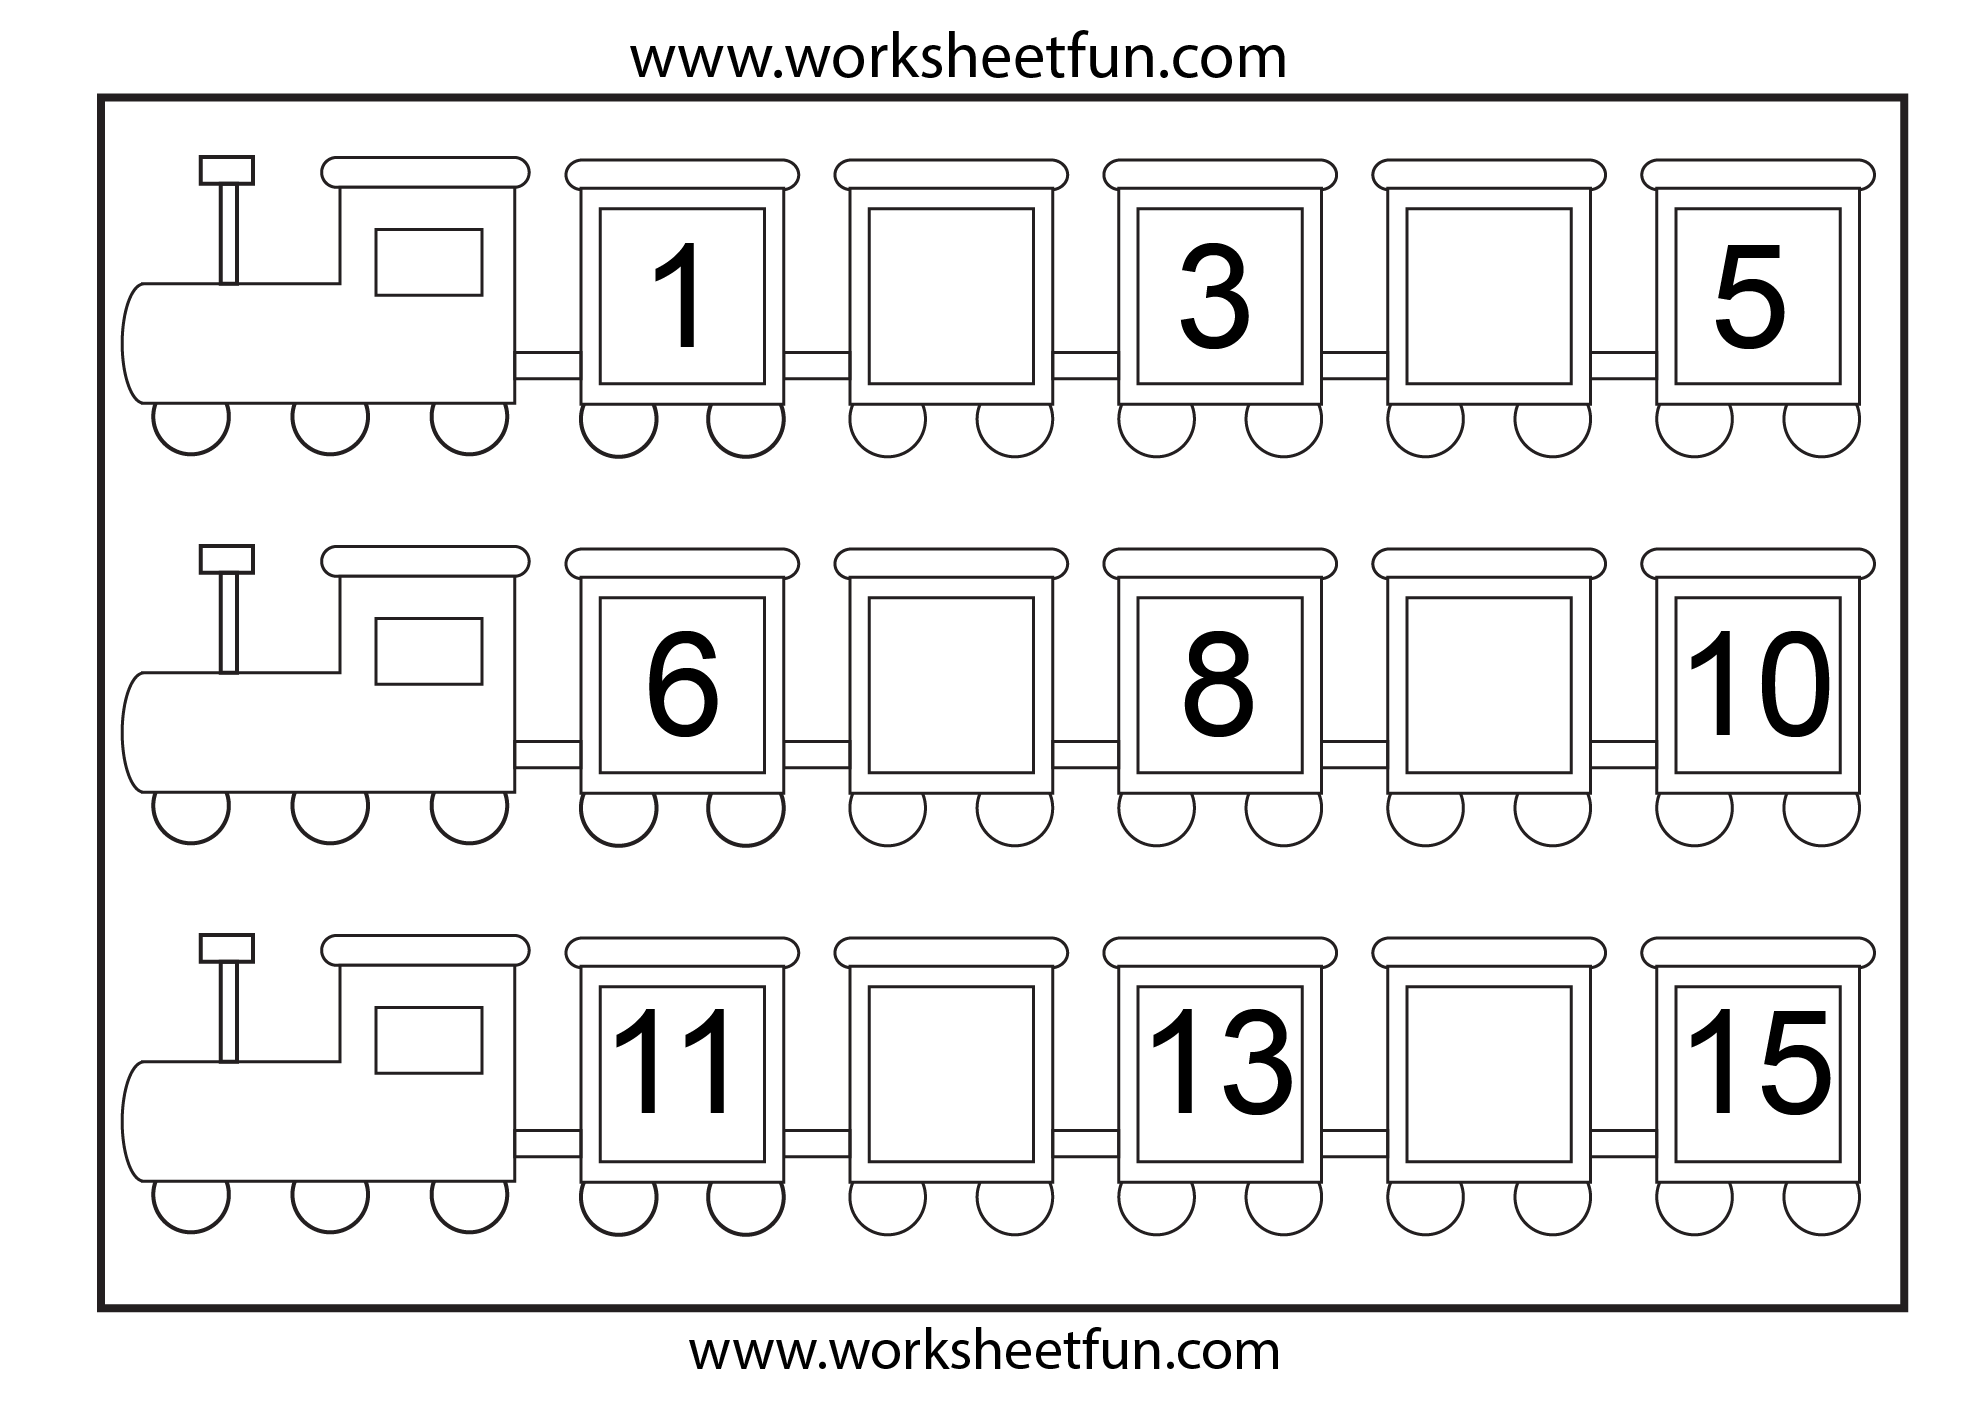 Missing Number Worksheets 1 20 crapdesign – Missing Numbers Worksheets